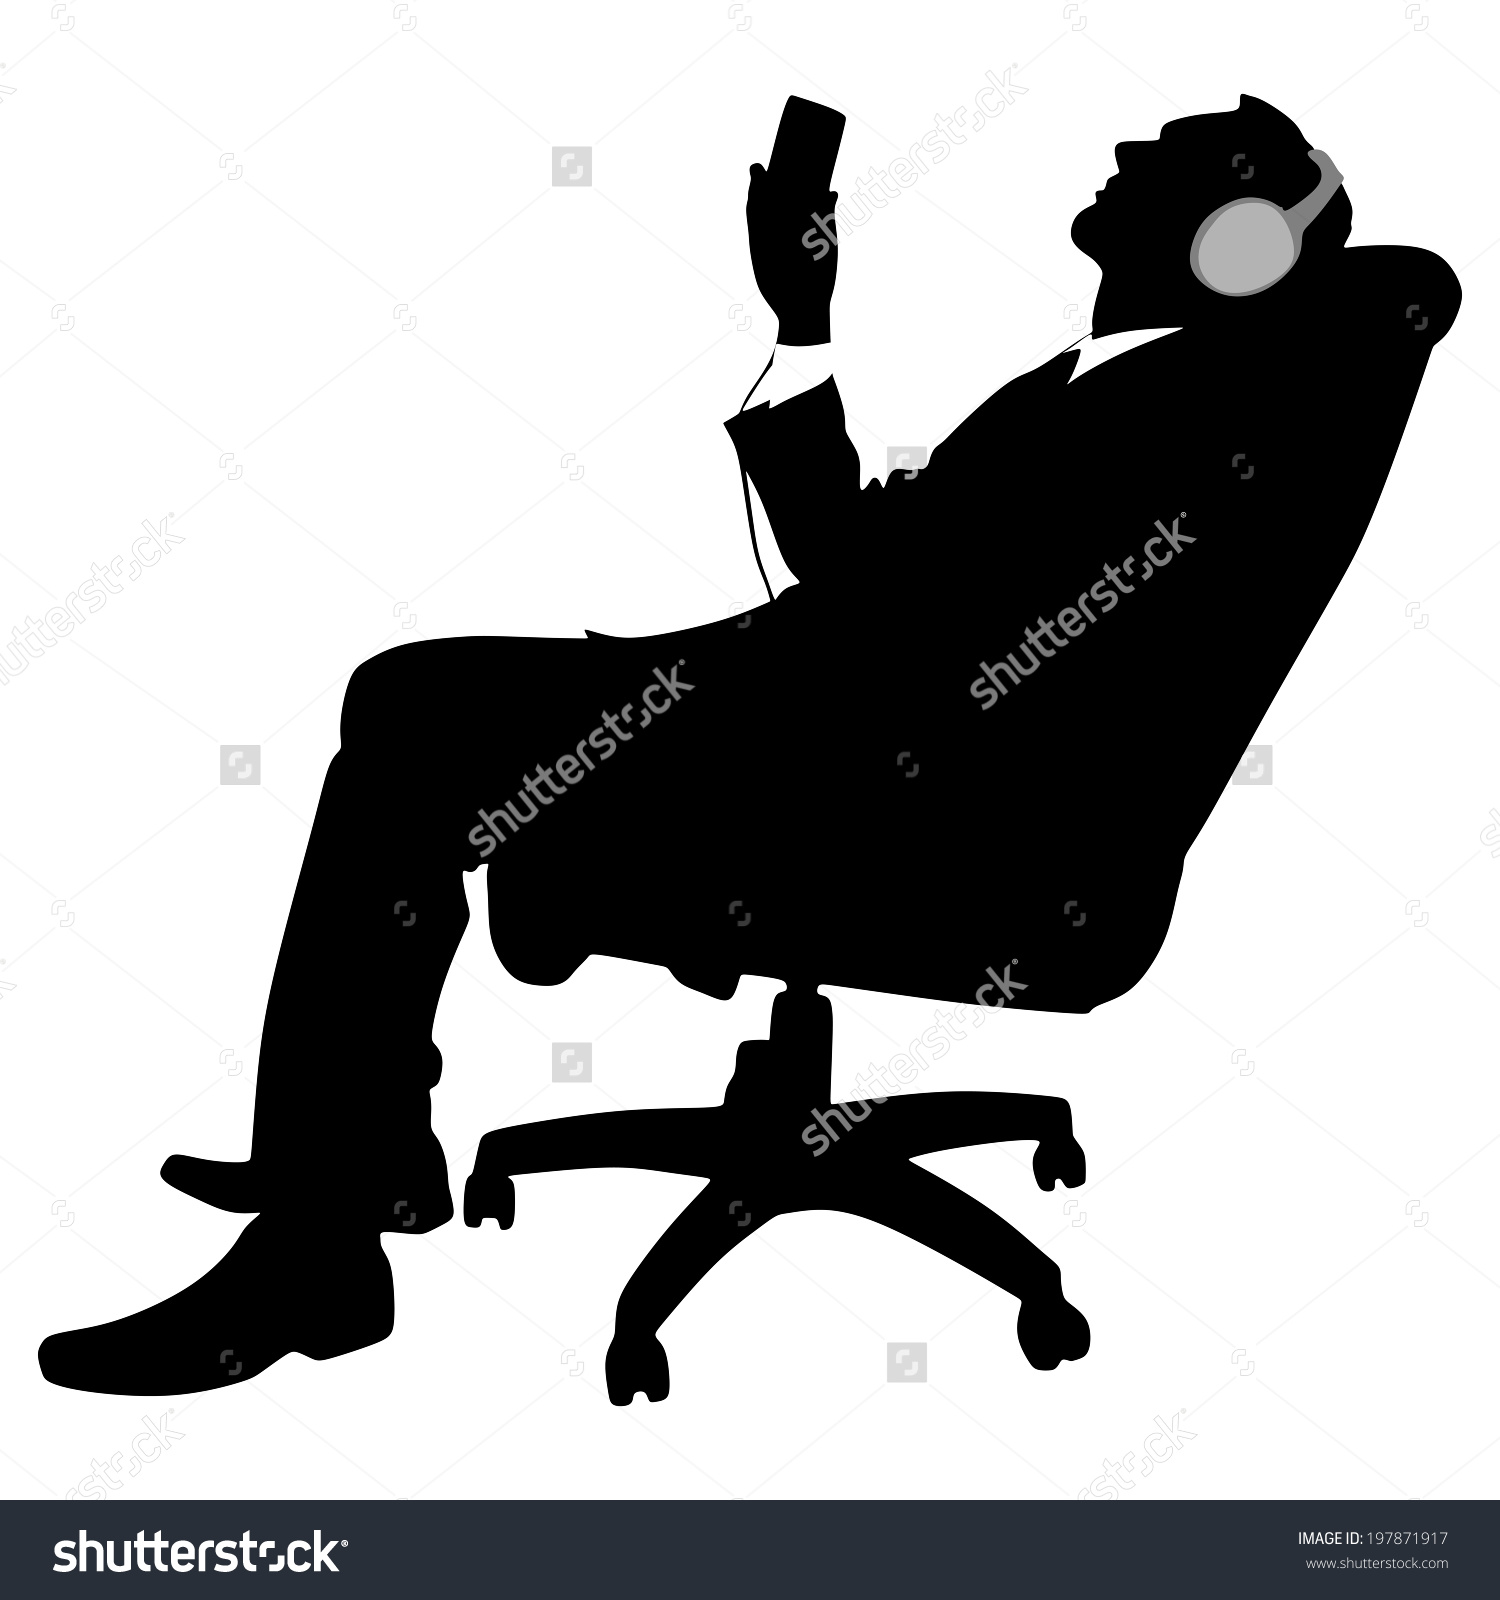 Listen to Music Clip Art Relaxing.